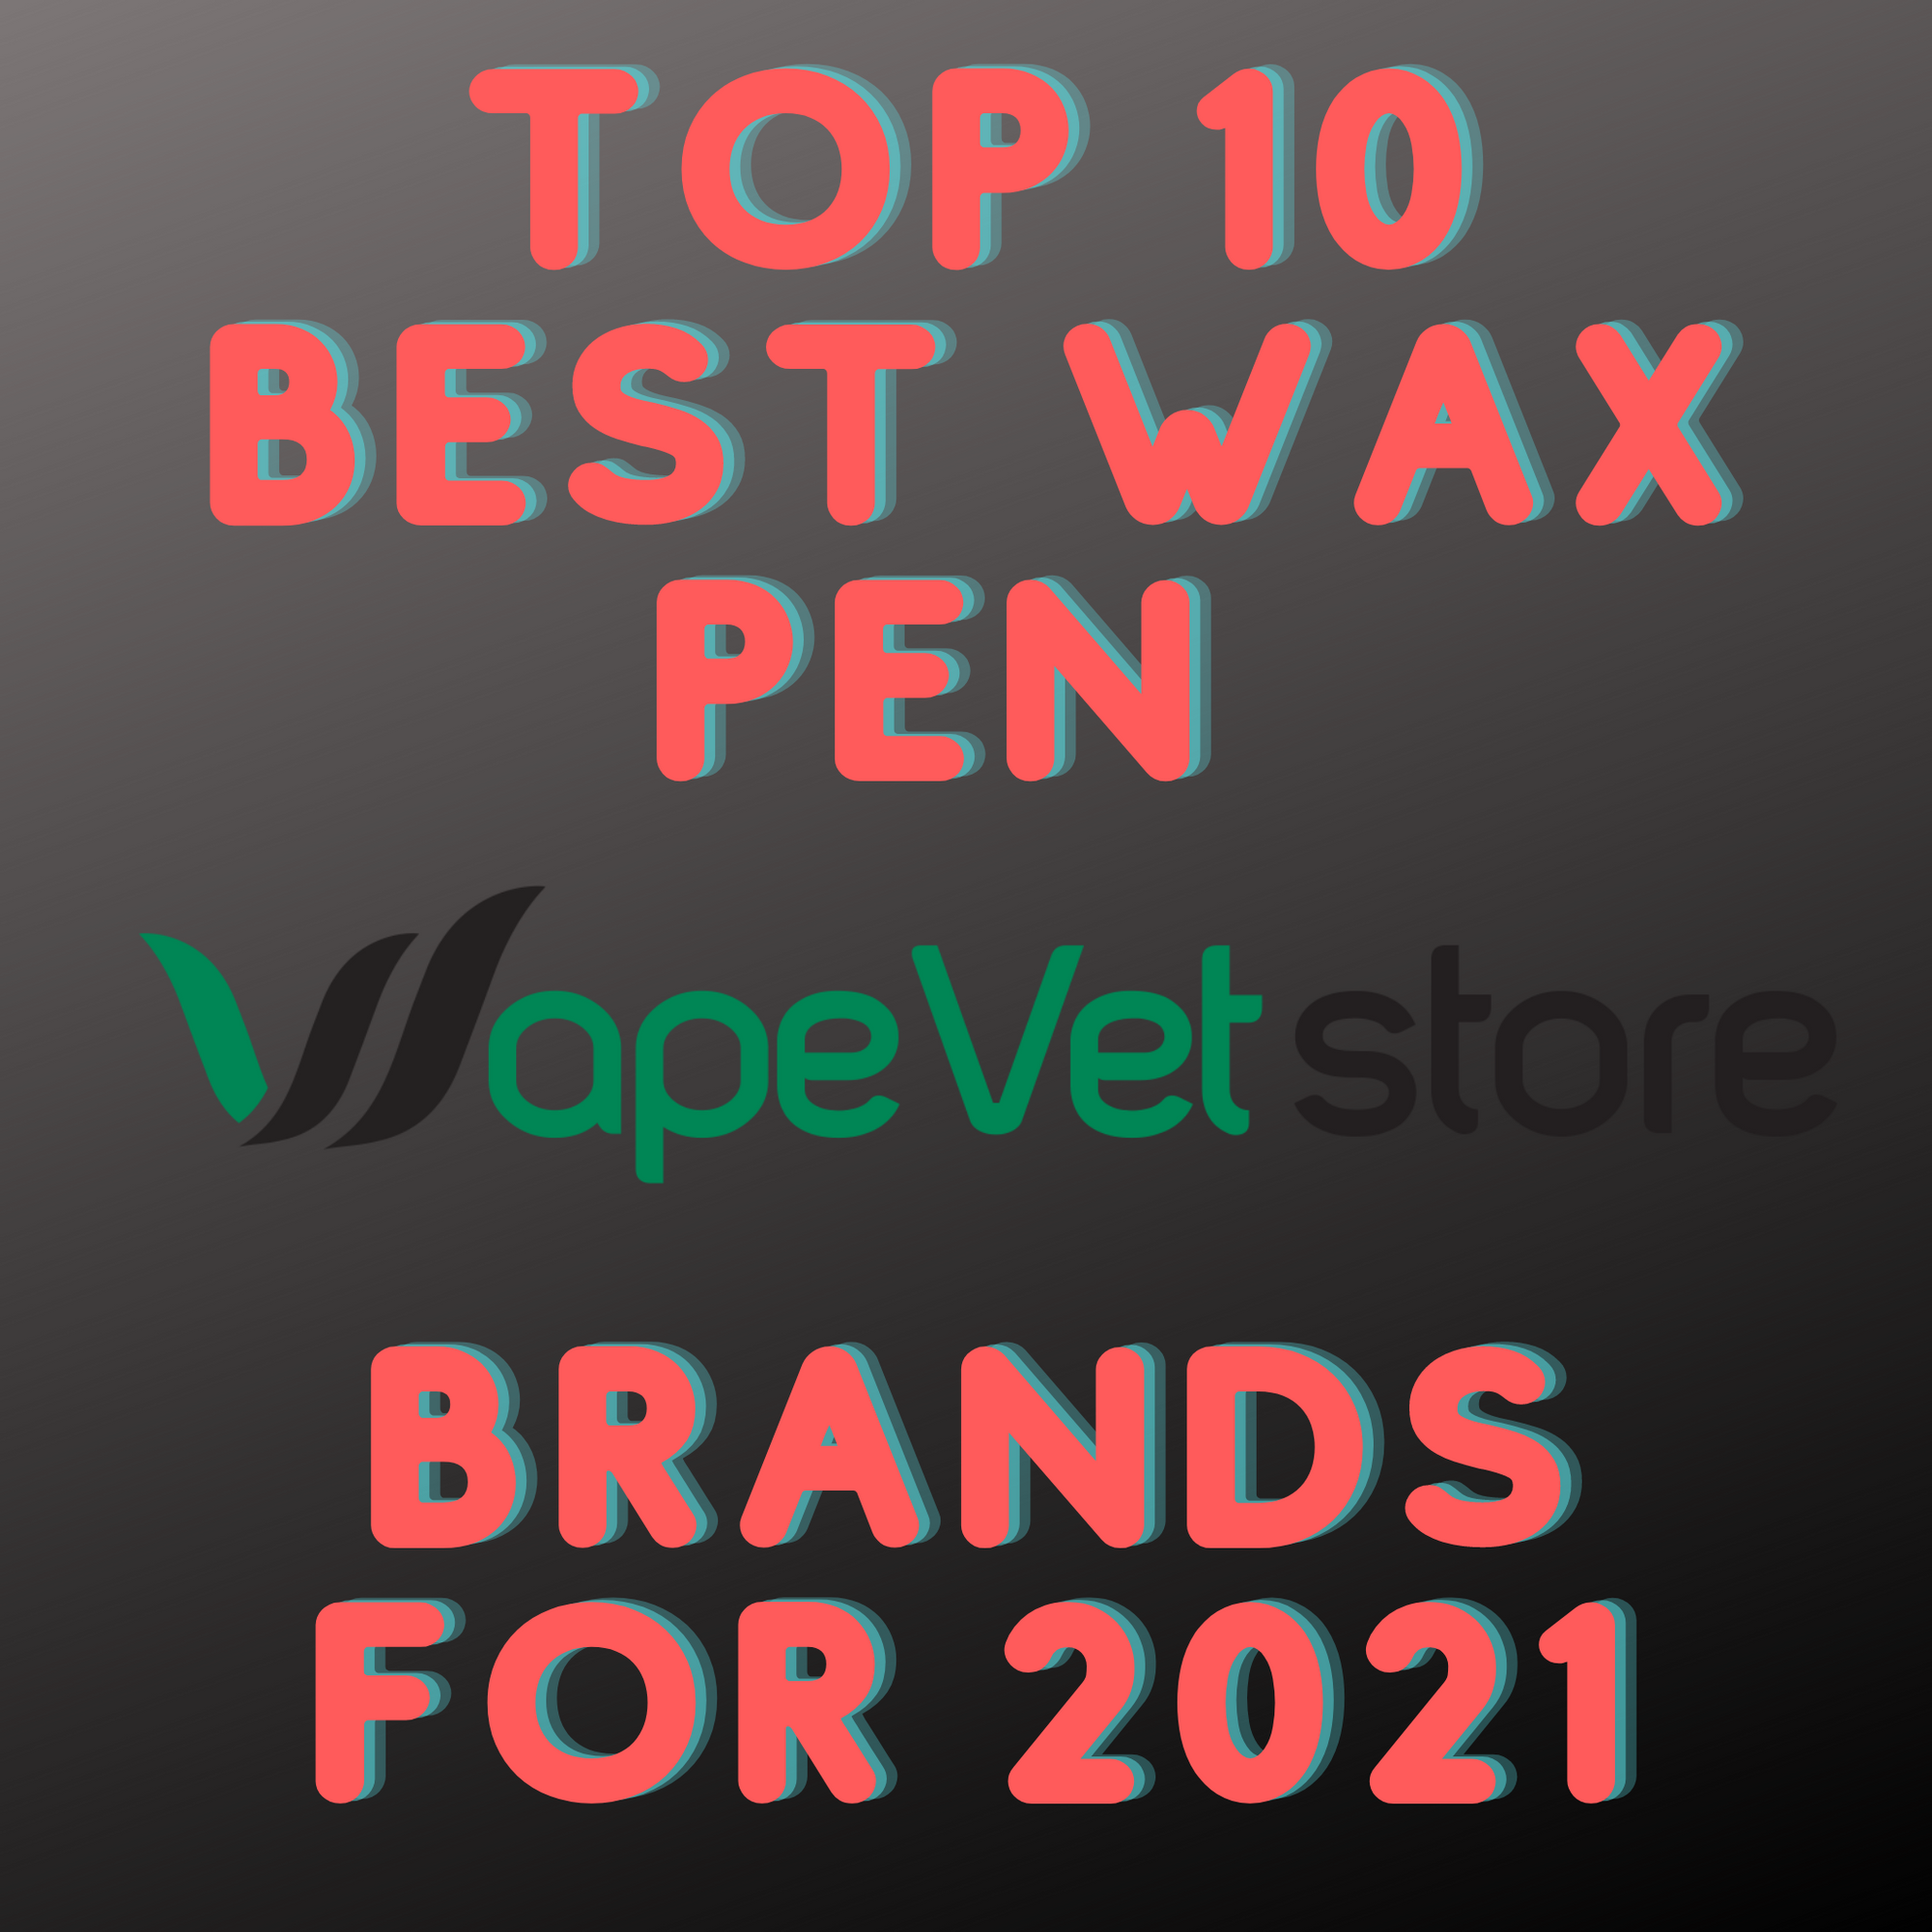 Top 10 Best Wax Pen Brands for 2021